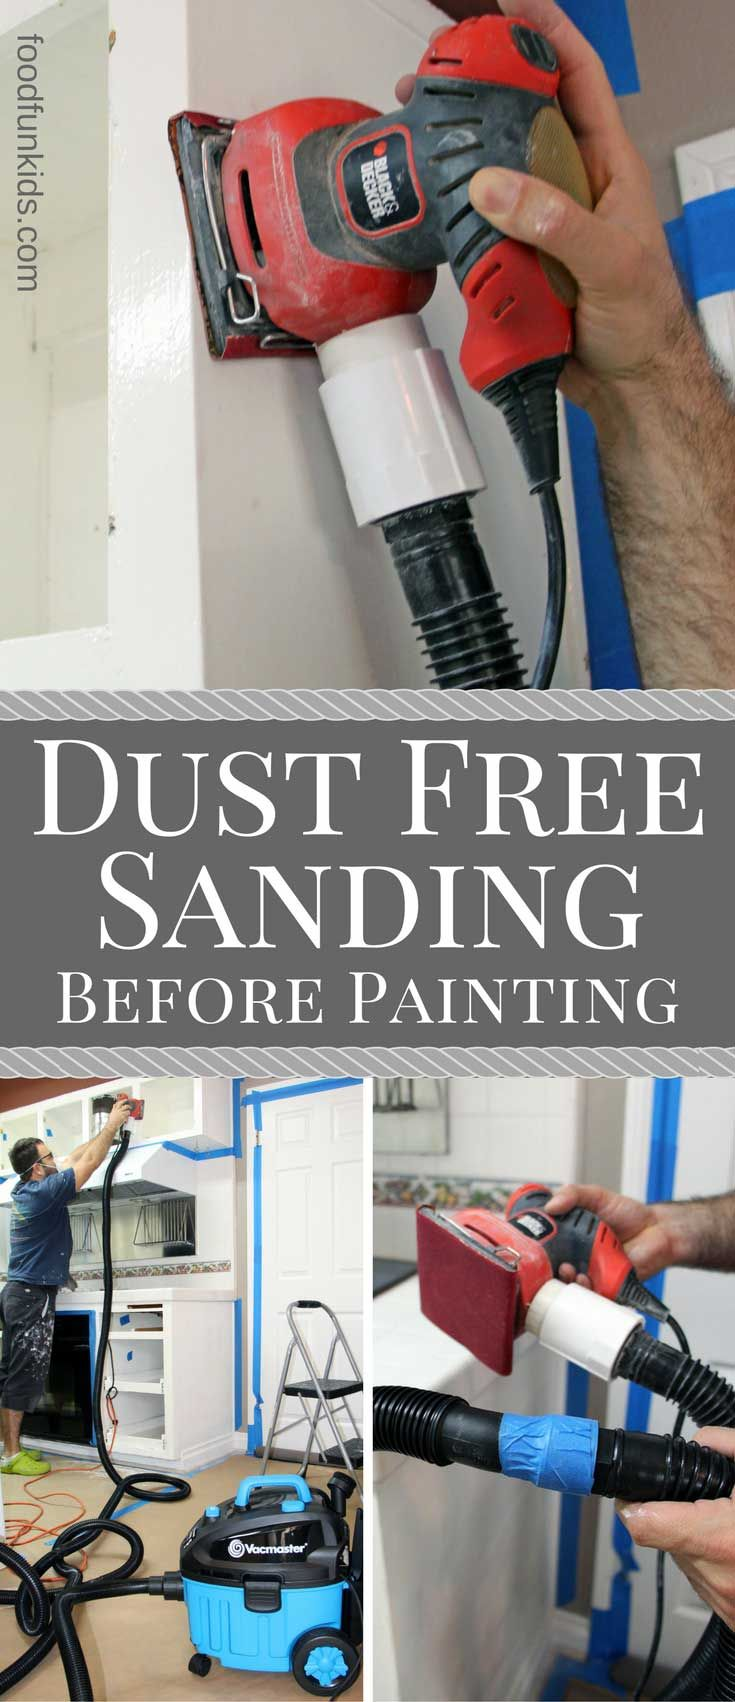 Dust Free Sanding Before Painting Dust Free Sanding Home Improvement Projects Diy Home Improvement